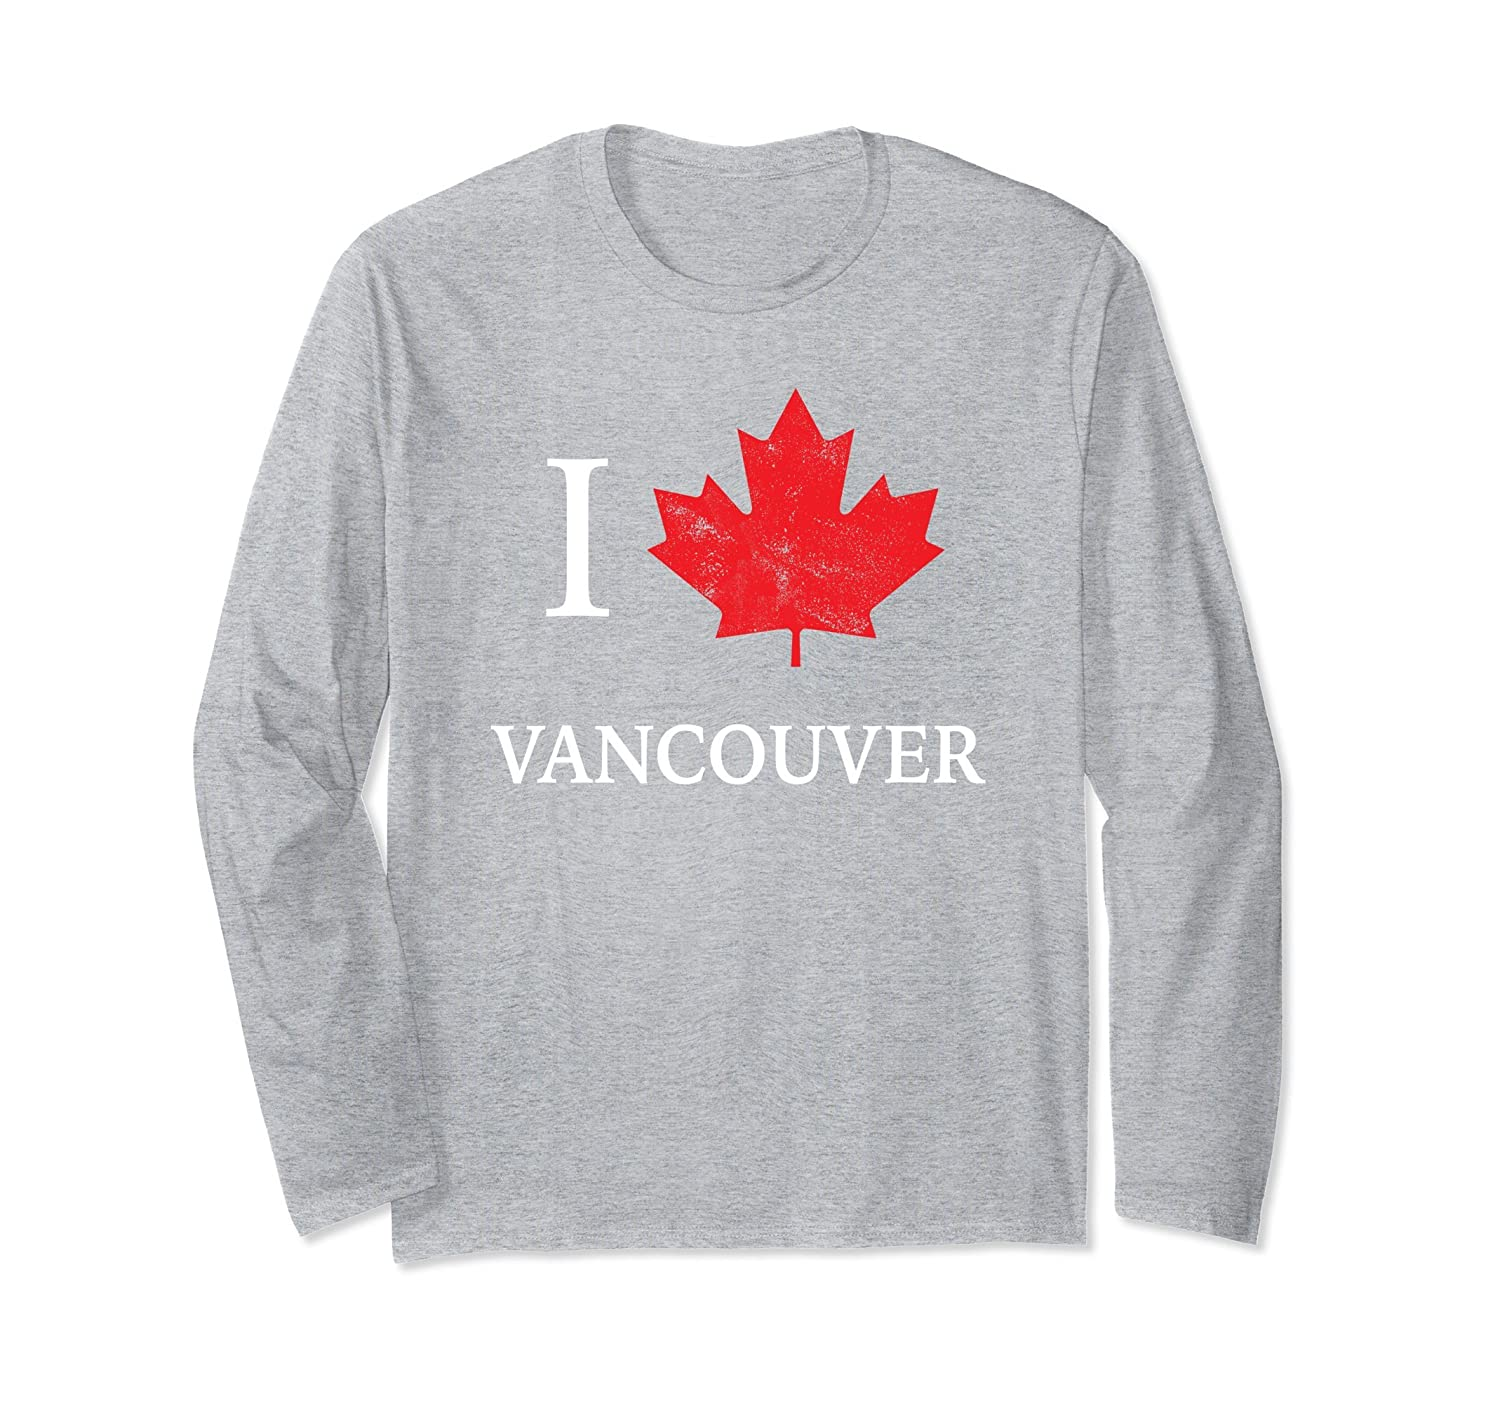 Vancouver Long Sleeve Canada Day Shirt Canadian Tourist-mt